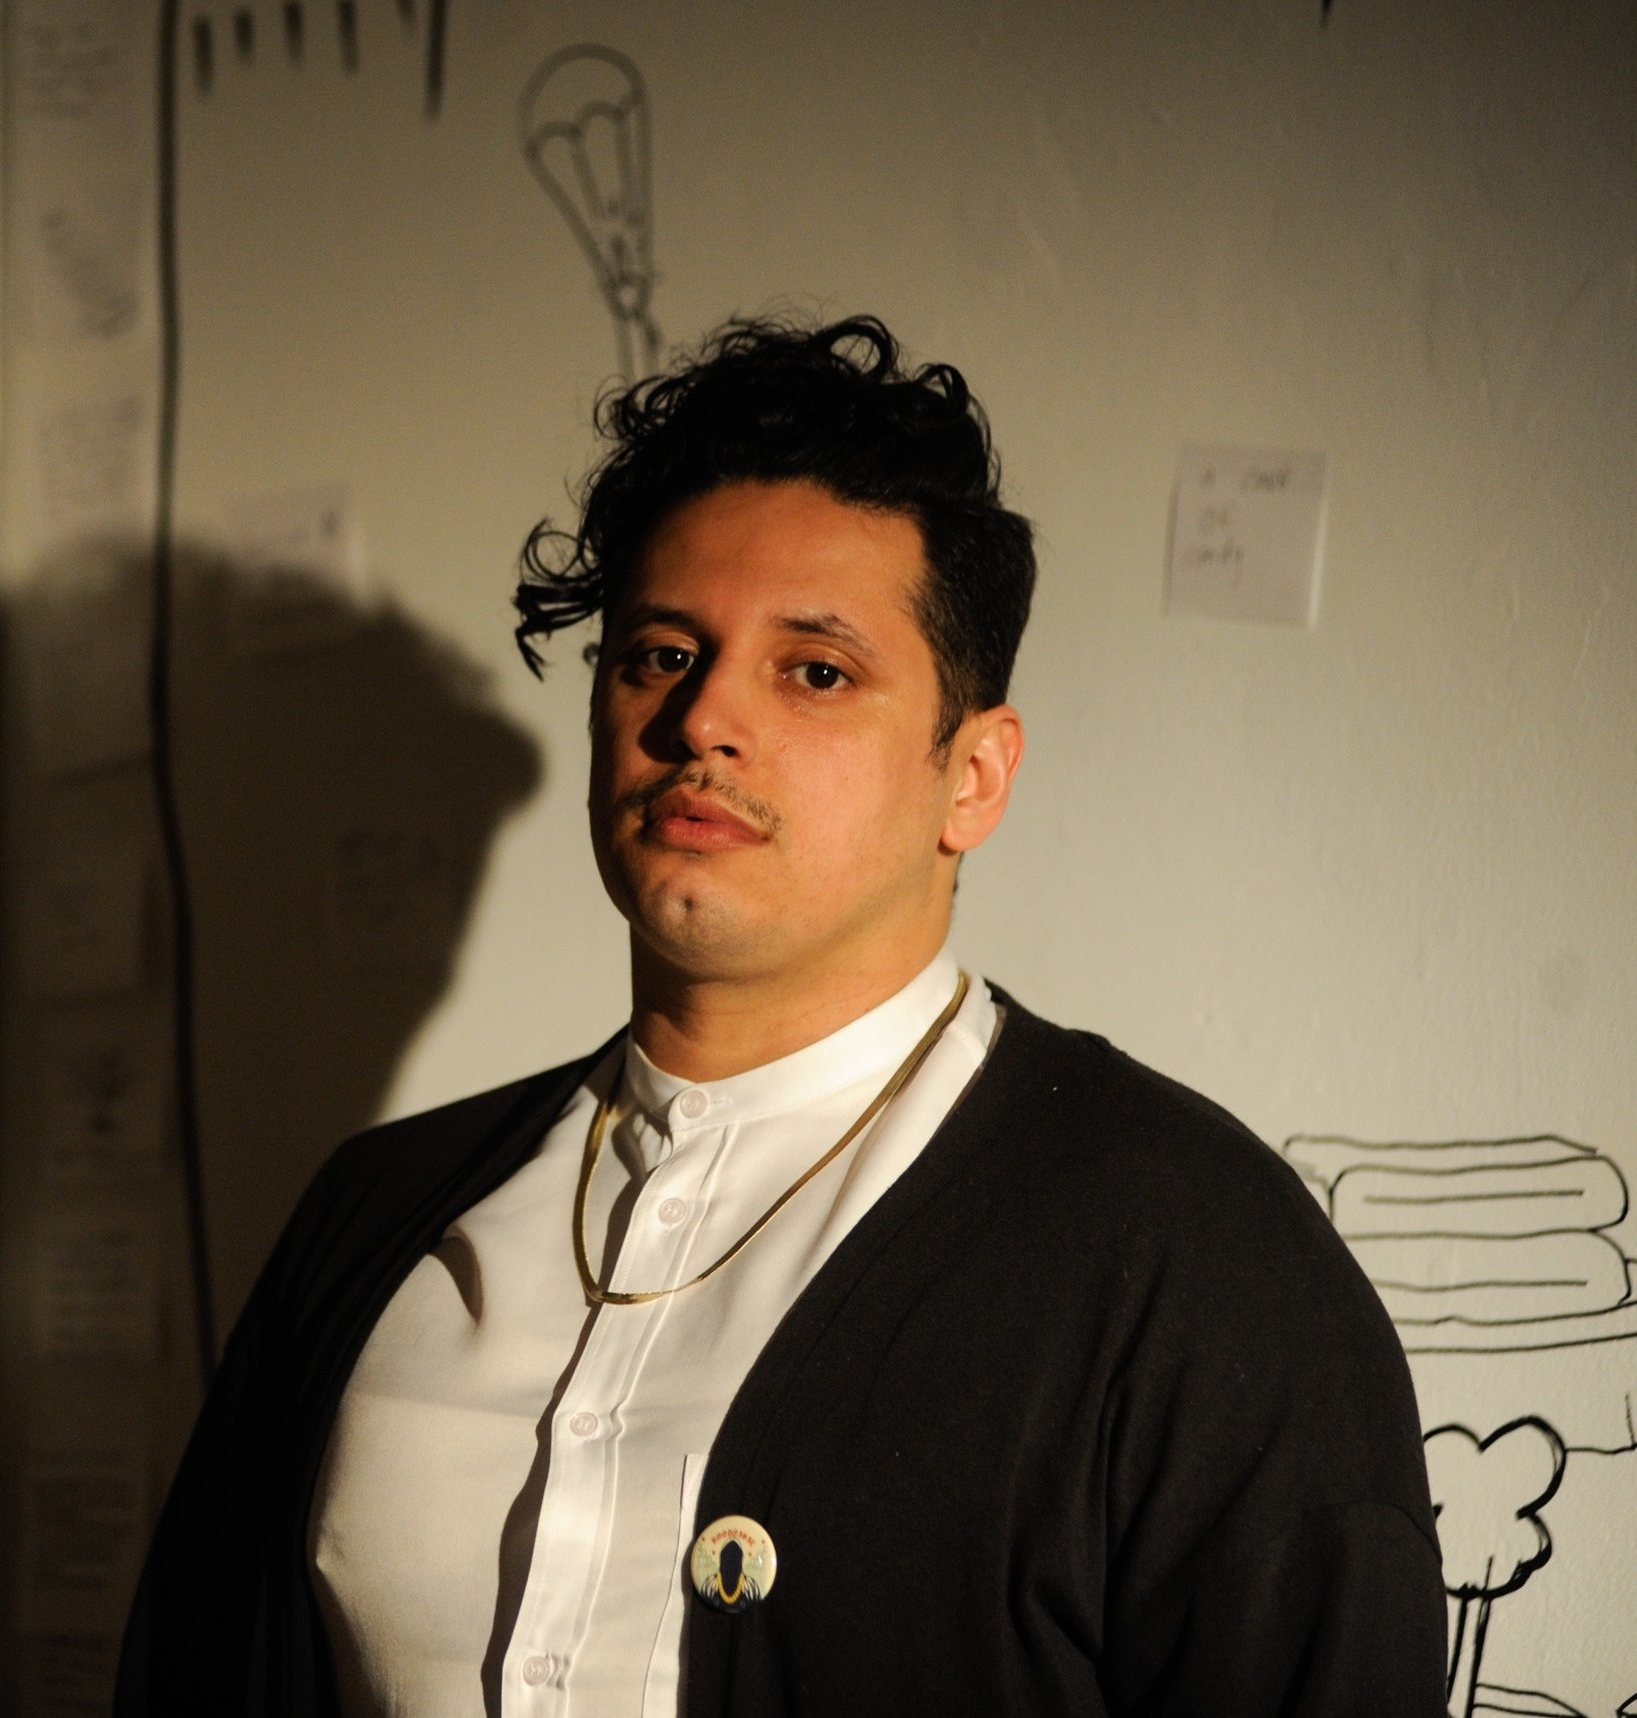 The Players. - Ricardo Gamboa (Founder, Host, Producer) is an award-winning artist, activist, and academic working in their native Chicago and New York City, creating radically politicized work. In Chicago, Ricardo is a member of the Free Street Theater, the Goodman Theater Playwrights Unit, a resident playwright at Chicago Dramatists, and founding adult creative partner of the controversial, politically-charged ensemble The Young Fugitives. In New York City, they are a fellow of the EmergeNYC program at Hemispheric Institute of Performance and Politics and a member of the New York Neo-Futurists. They are finishing their doctorate degree at New York University's renowned American Studies program and are a Critical Collaborations Fellow (2016-2018) at the Tisch School of the Arts, where they received their M.A. in Arts Politics (2013). Ricardo has won several awards including a Joyce Award and an International Connections Award from the John D. and Catherine T. MacArthur Foundation. They have worked with over 5,000 young people in the hemisphere. Their current projects include the underground live news show and podcast The Hoodoisie, the audience- and critically engaged, community-based theater piece Meet Juan(ito) Doe and BRUJOS, the genre-bending, ground-breaking web series about four gay Latino doctoral students who are also witches (co-directed with Reshmi Hazra Rustebakke and Robert Stockwell).